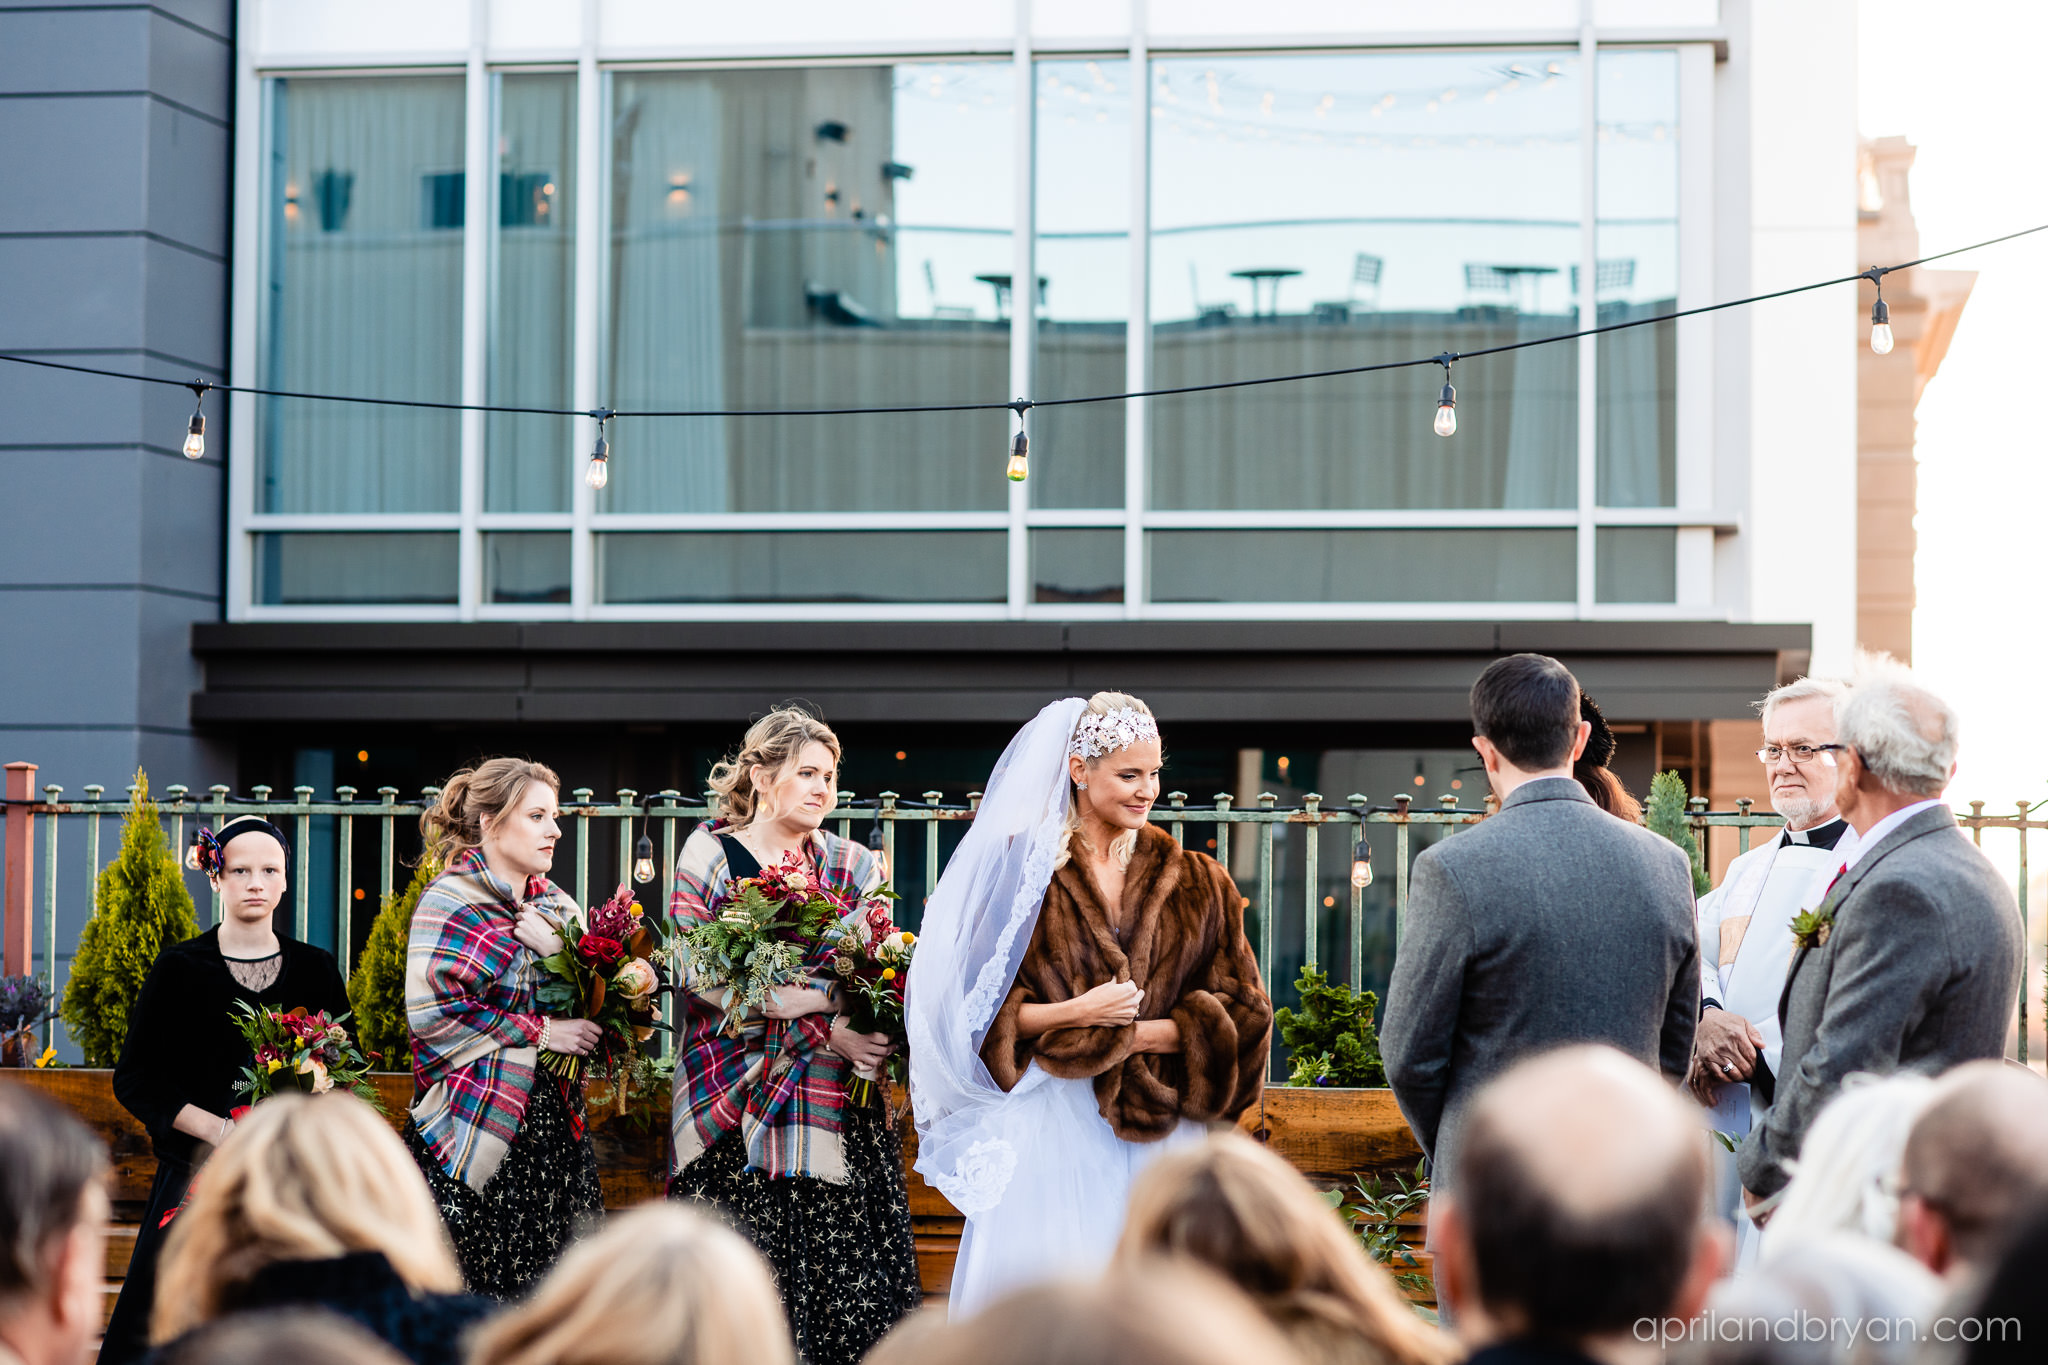 The two prepare to say I do on the rooftop with an Irish flare. Nicholas and Rebecca Fasnacht tie the not at Tellus360 on November 1, 2019. Captured by April & Bryan Photography and featured on Dream Weddings.